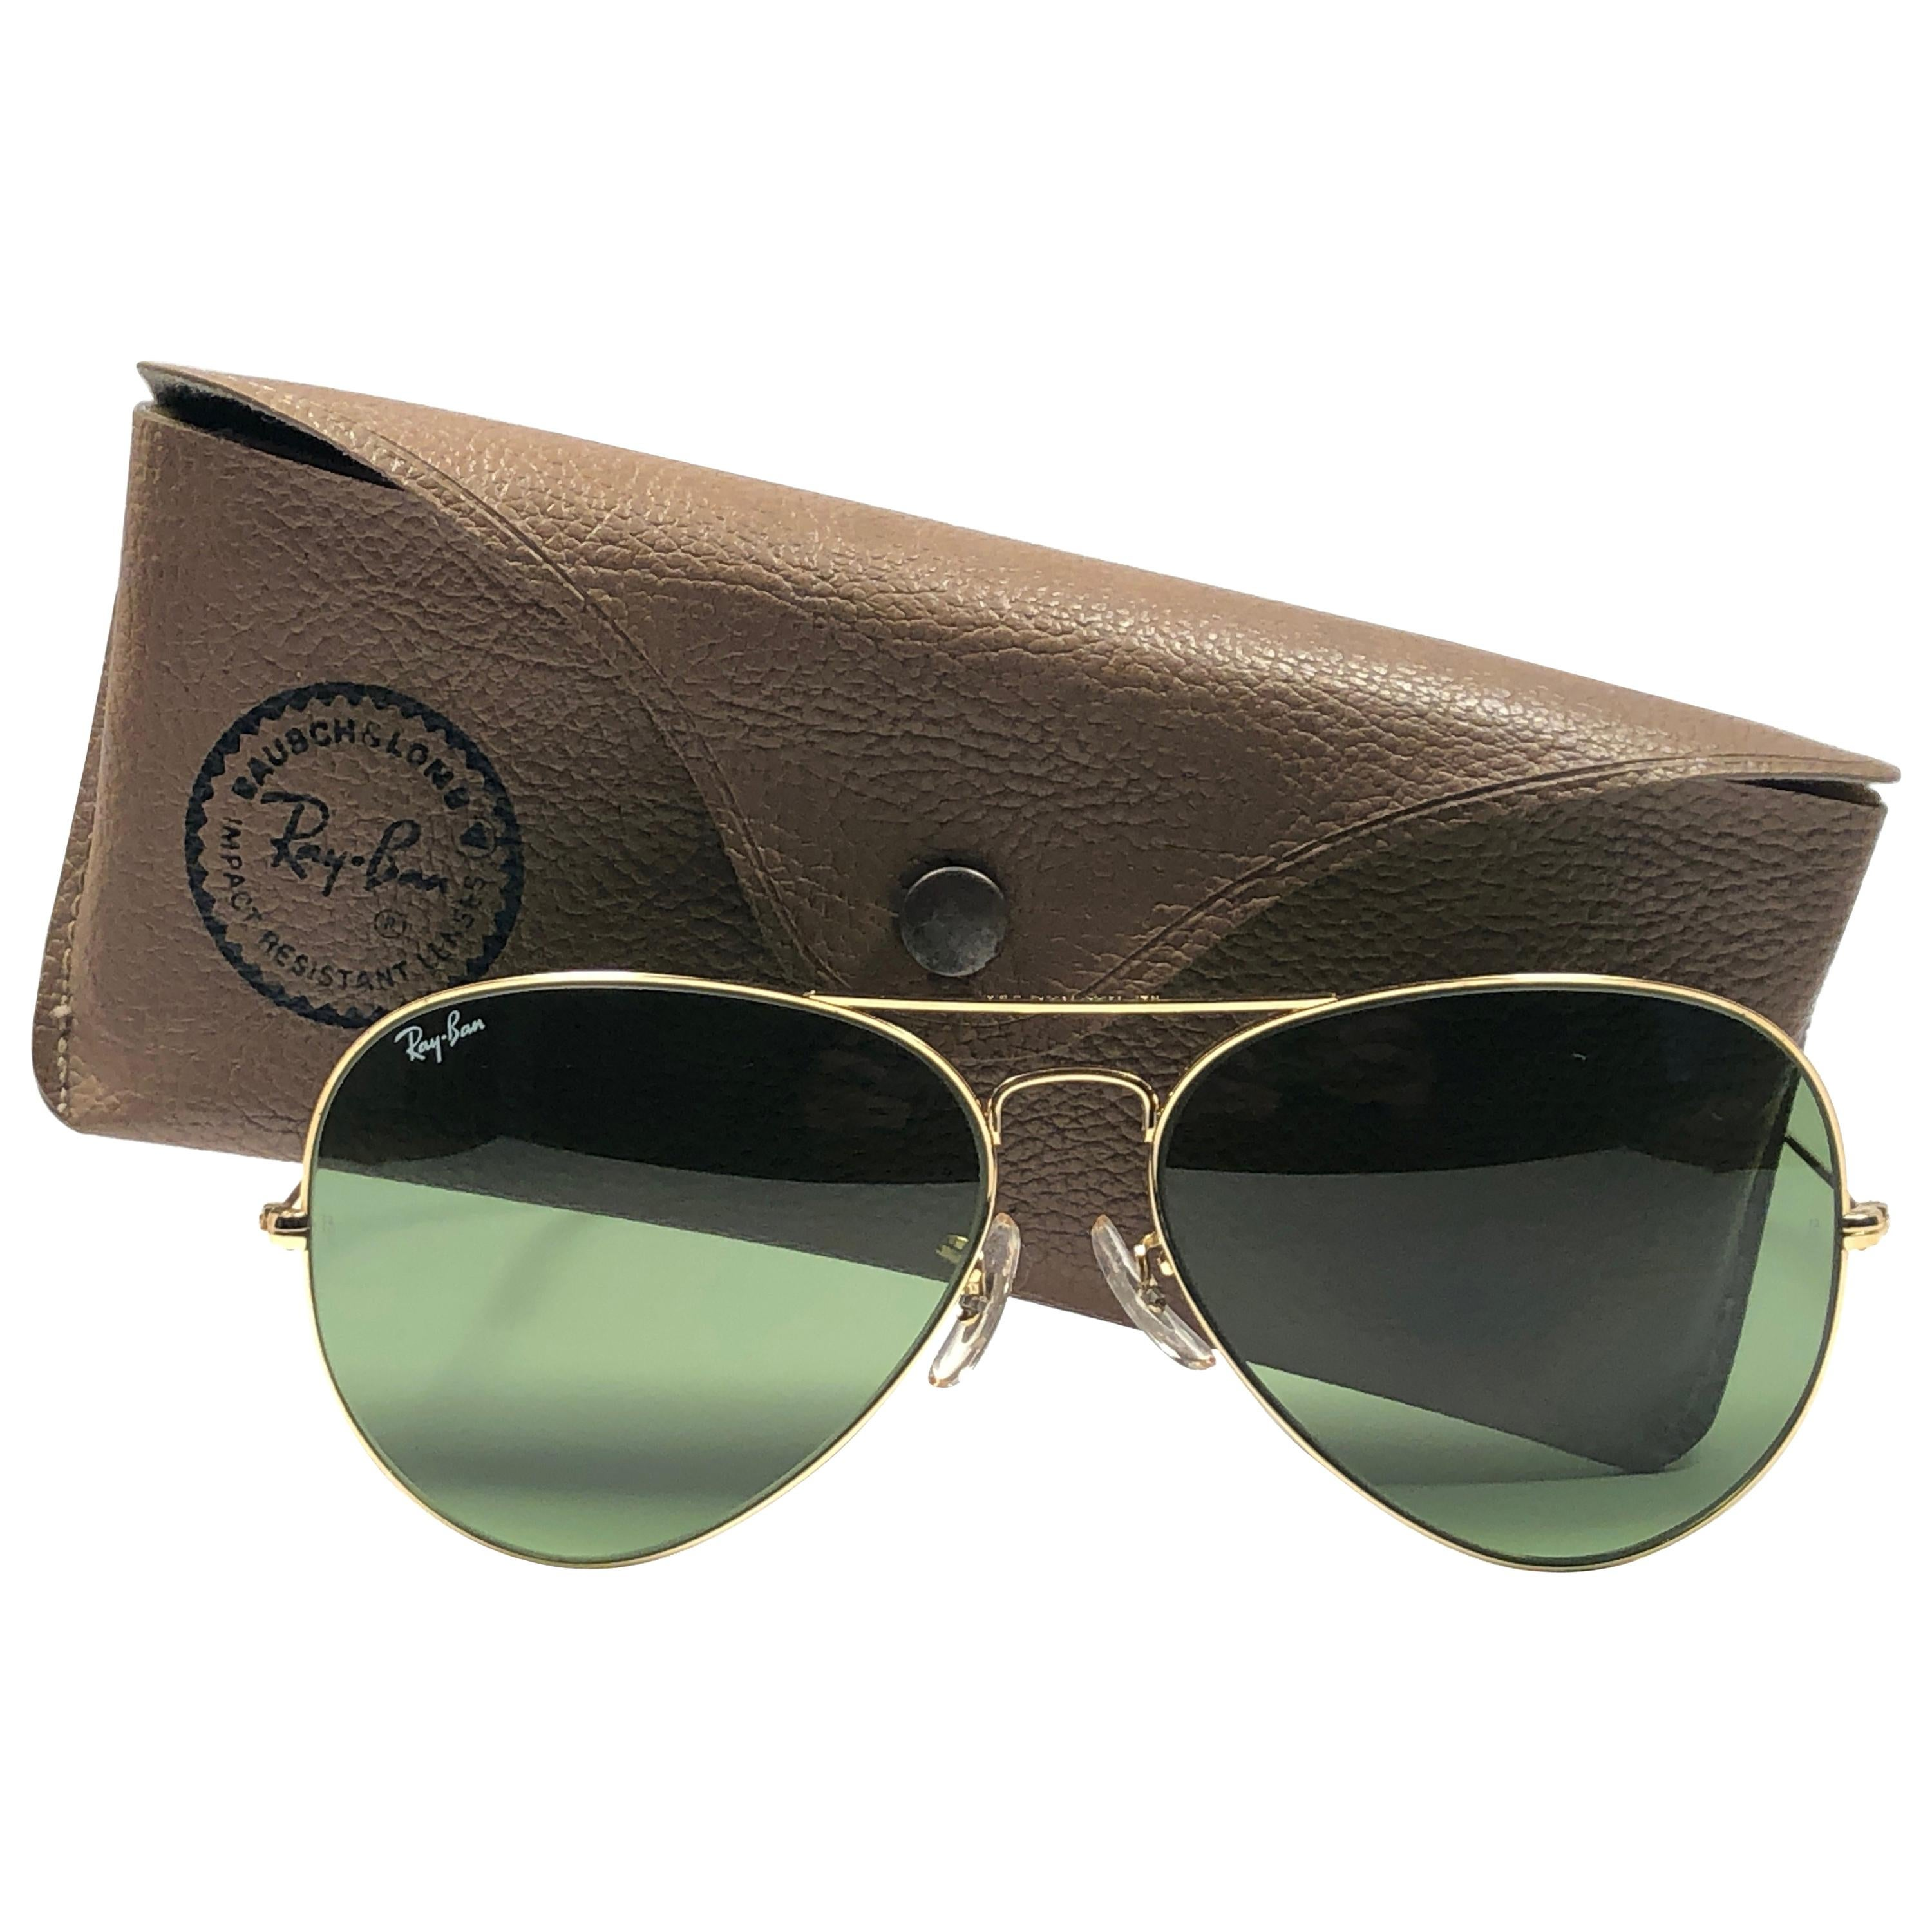 Green New Ray Ban For Sunglasses 62mm Vintage Lenses B Aviator amp;l Rb3 xrdoeCBW